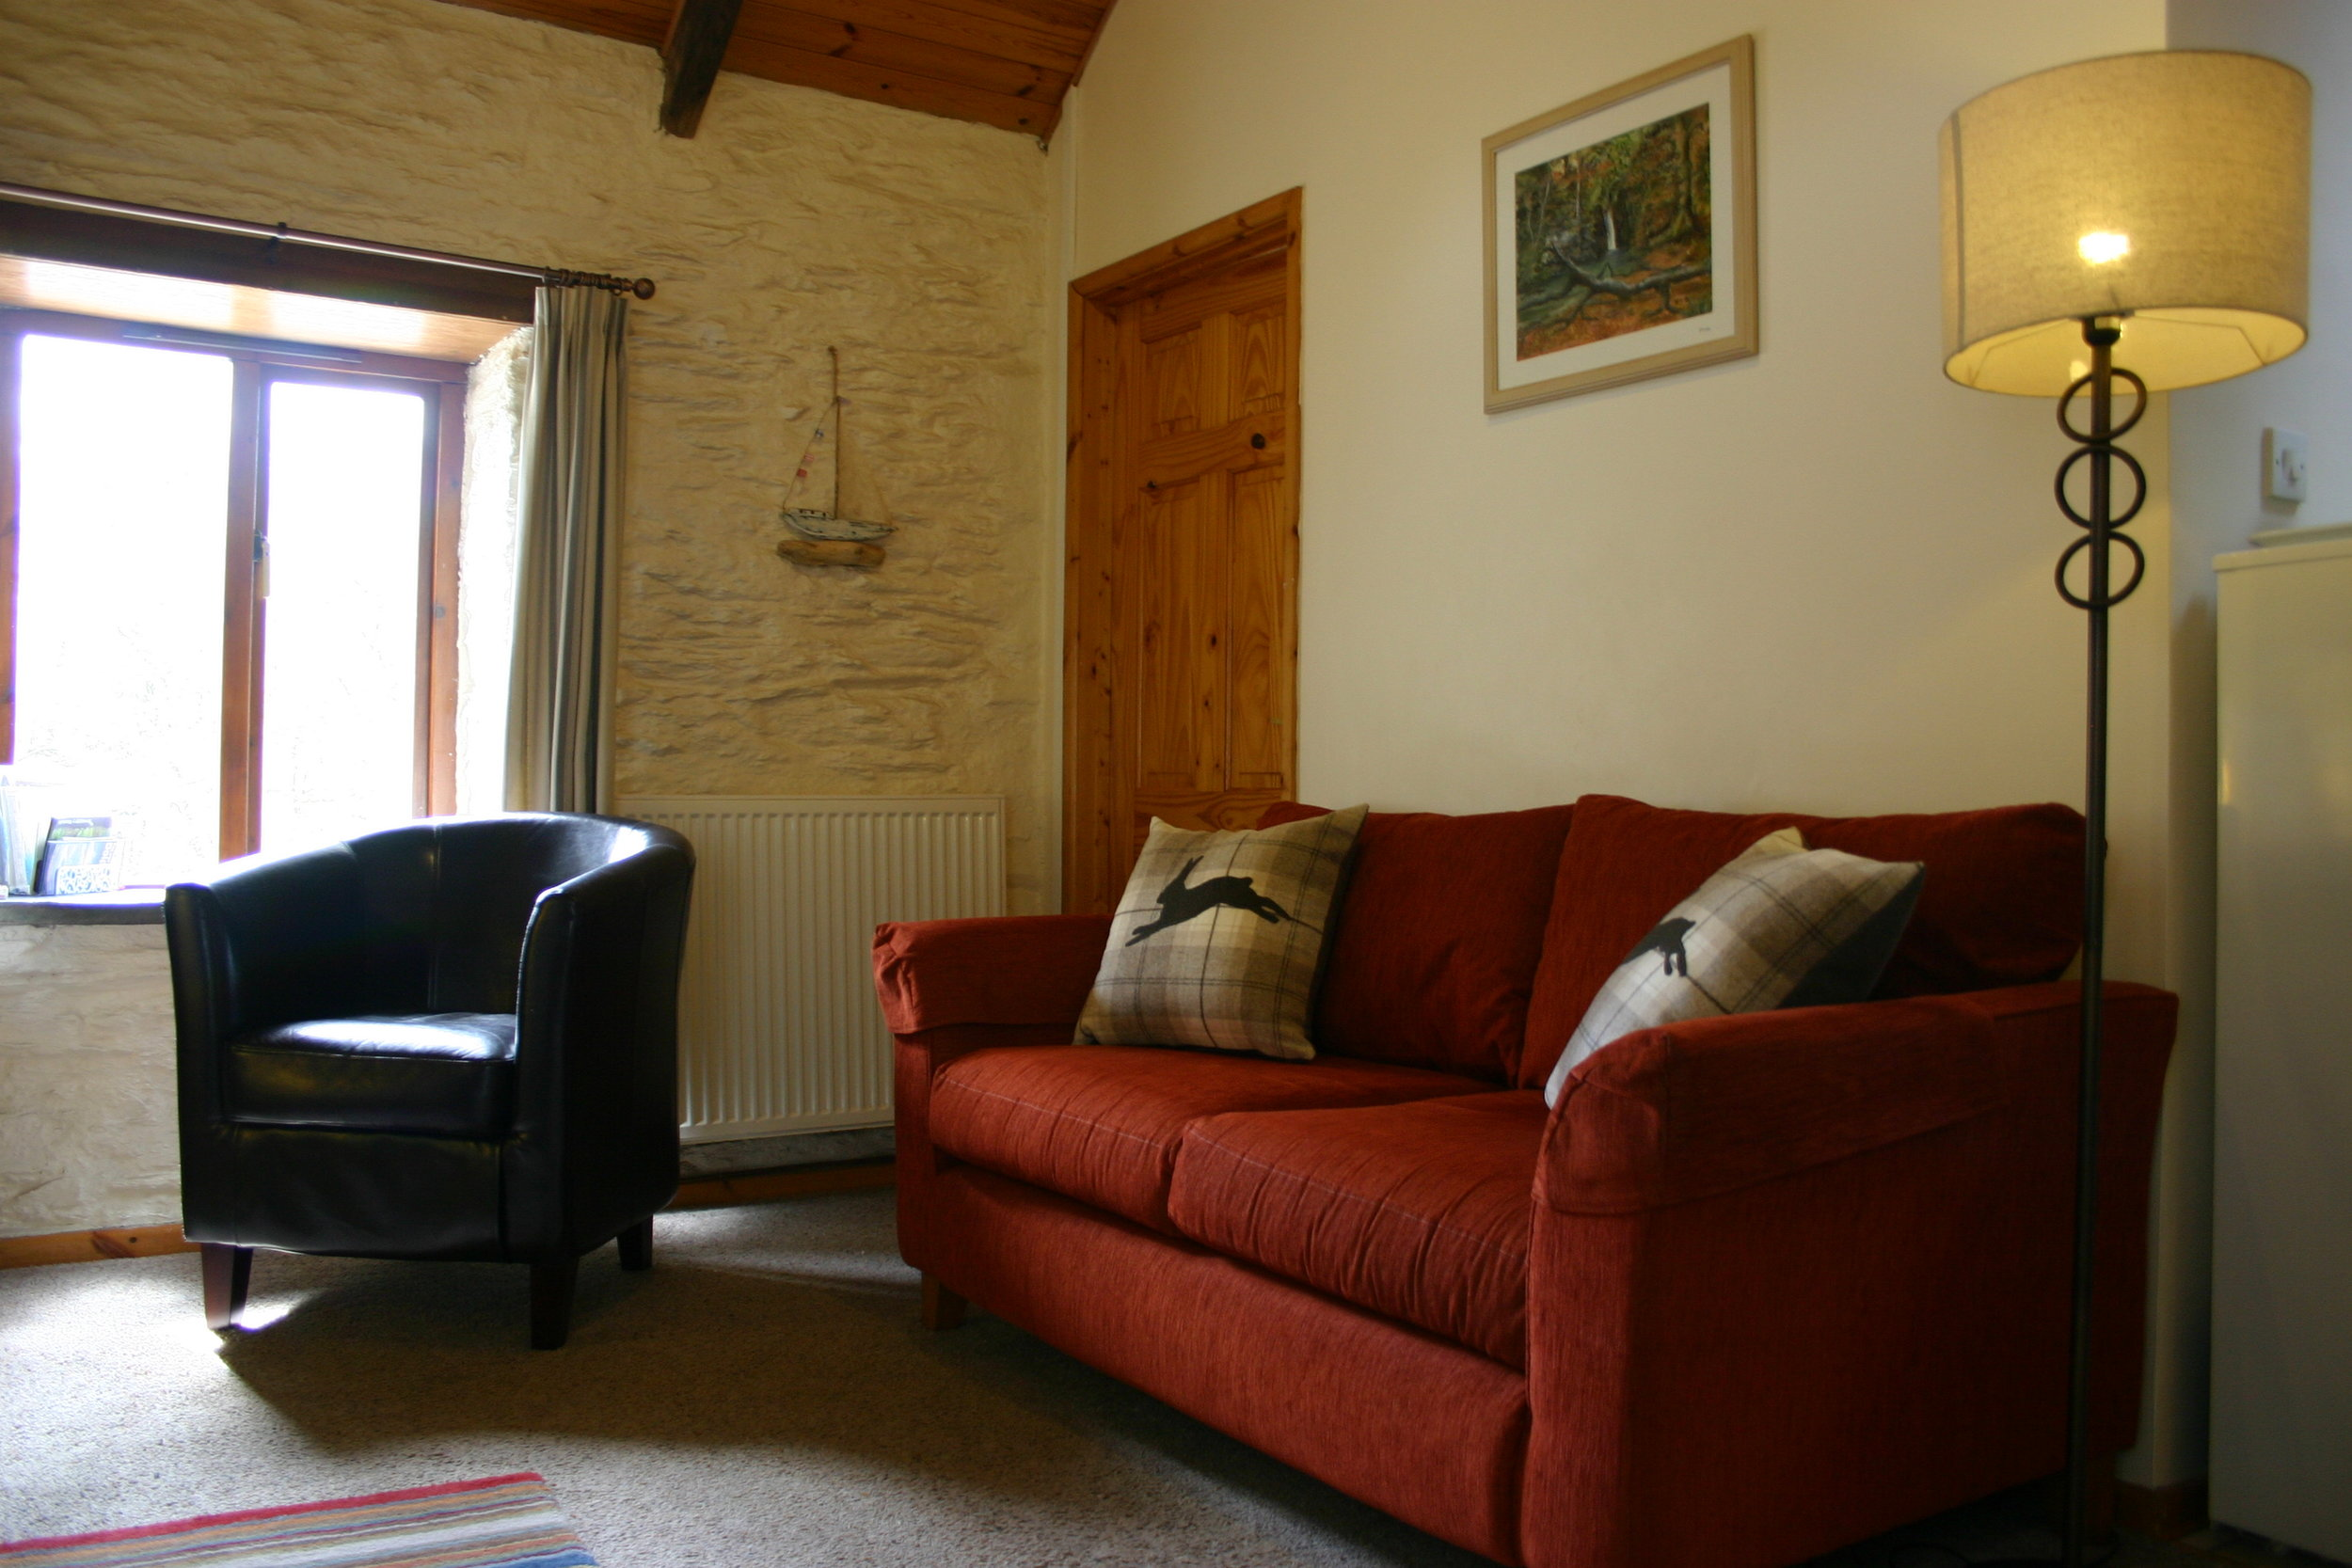 Gorse Cottage - Gorse Cottage is a two bedroom holiday cottage sleeps three graded 5 stars by Visit Wales. The self catering cottage sleeps up to three and have a sitting/dining room with fully equipped galley type kitchen off. This cottage is all on one level. There are two bedrooms one with double bed, the other with a single bed. The bathroom has a bath and shower over.